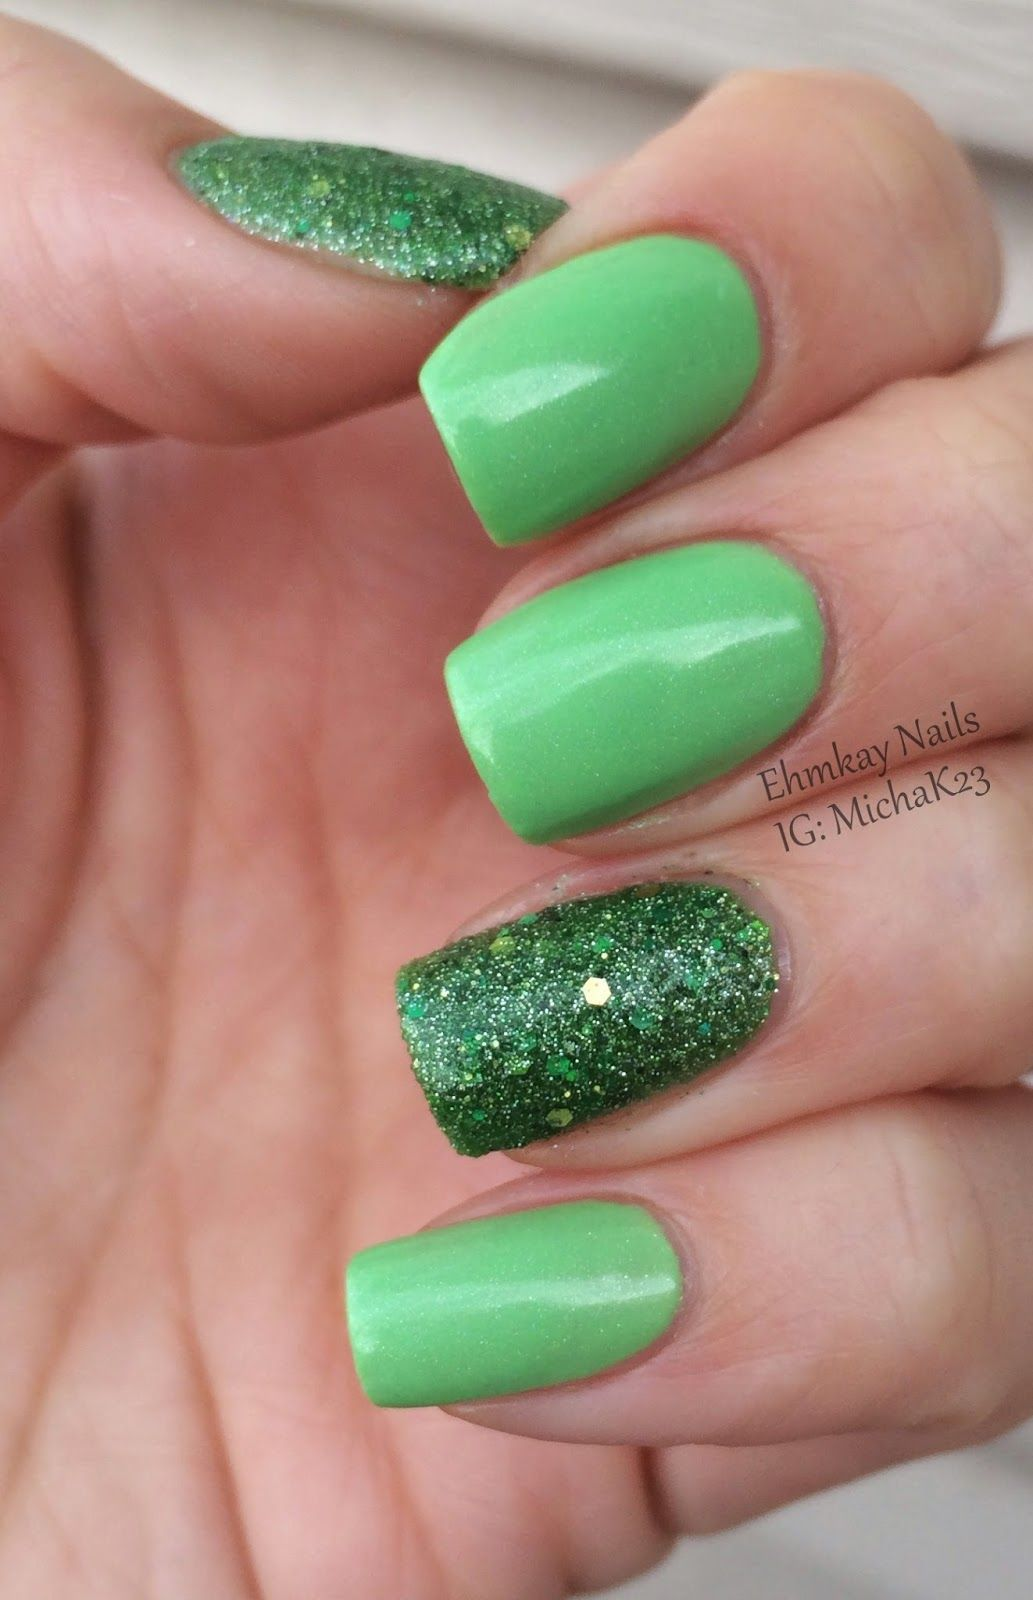 Red Dog Designs Pog Mo Thoin and Blarney Stone http://ehmkaynails ...